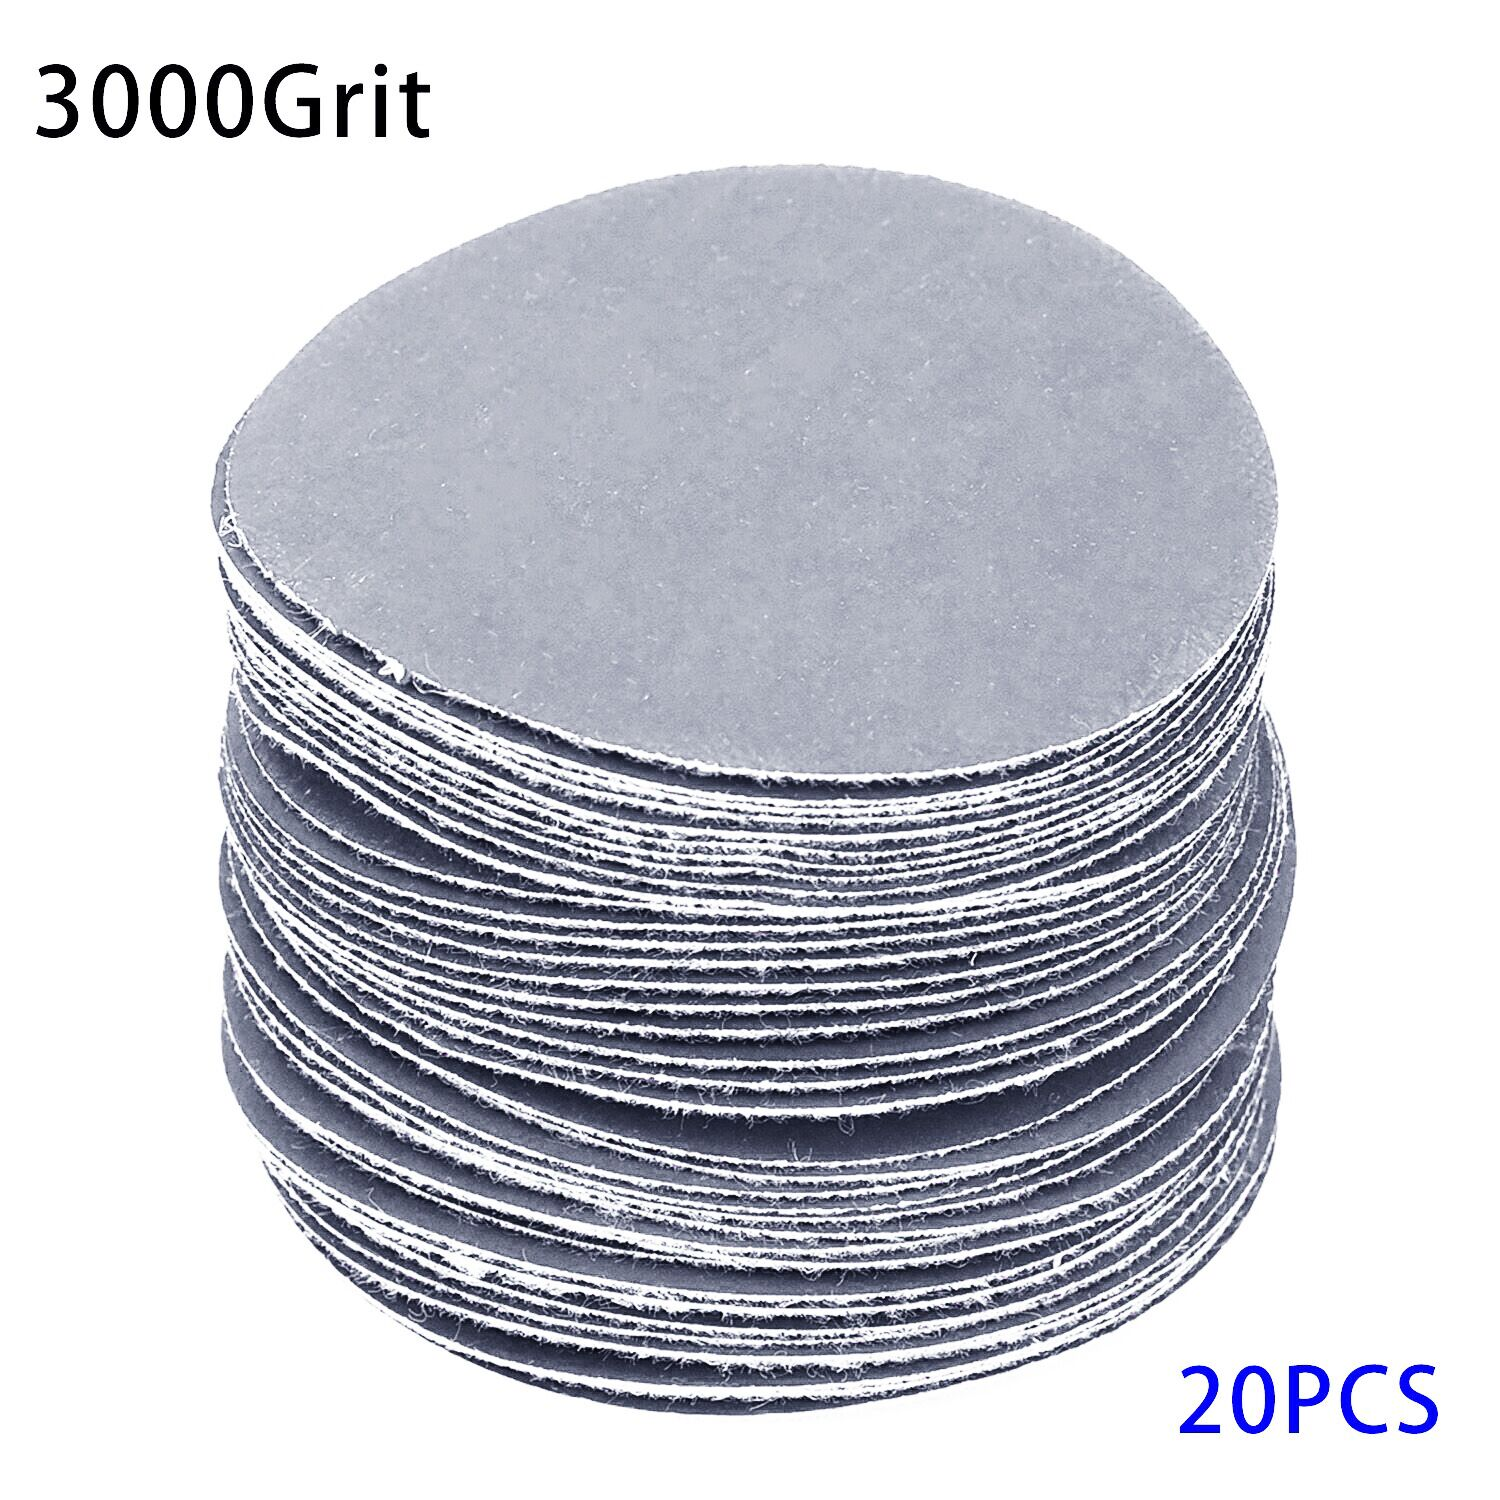 20pcs/Set 75mm 40-3000 Grits Wet Dry Sandpapers Adhesive Loop Backing Sander Grinder Discs Replacement Abrasive Tools